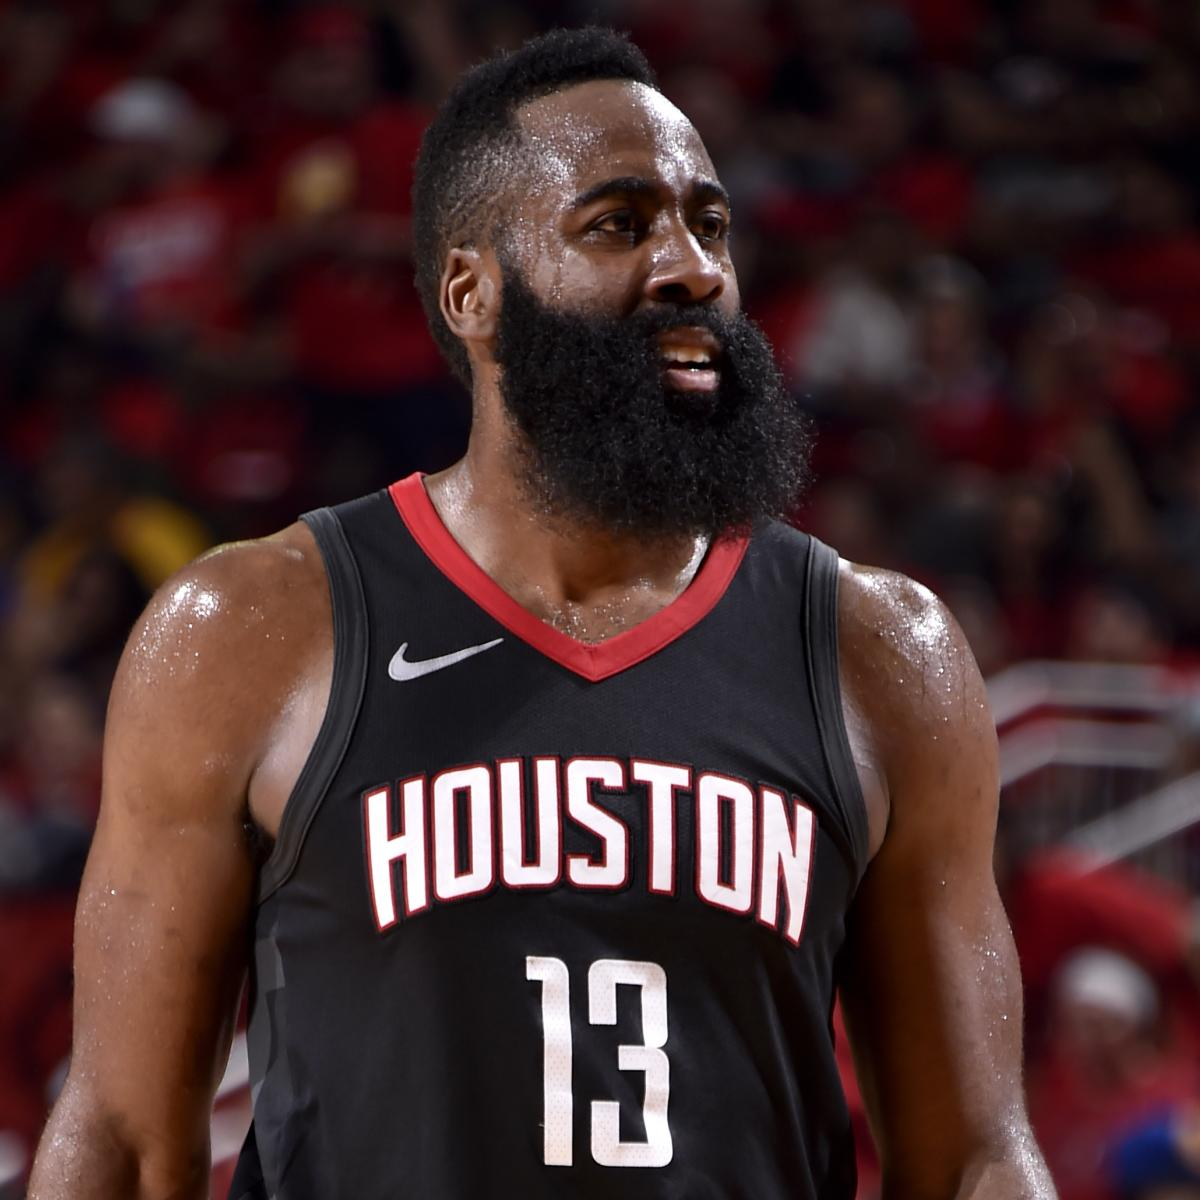 Nba2k19 James Harden: James Harden Wins 2018 NBA MVP Award Over LeBron James